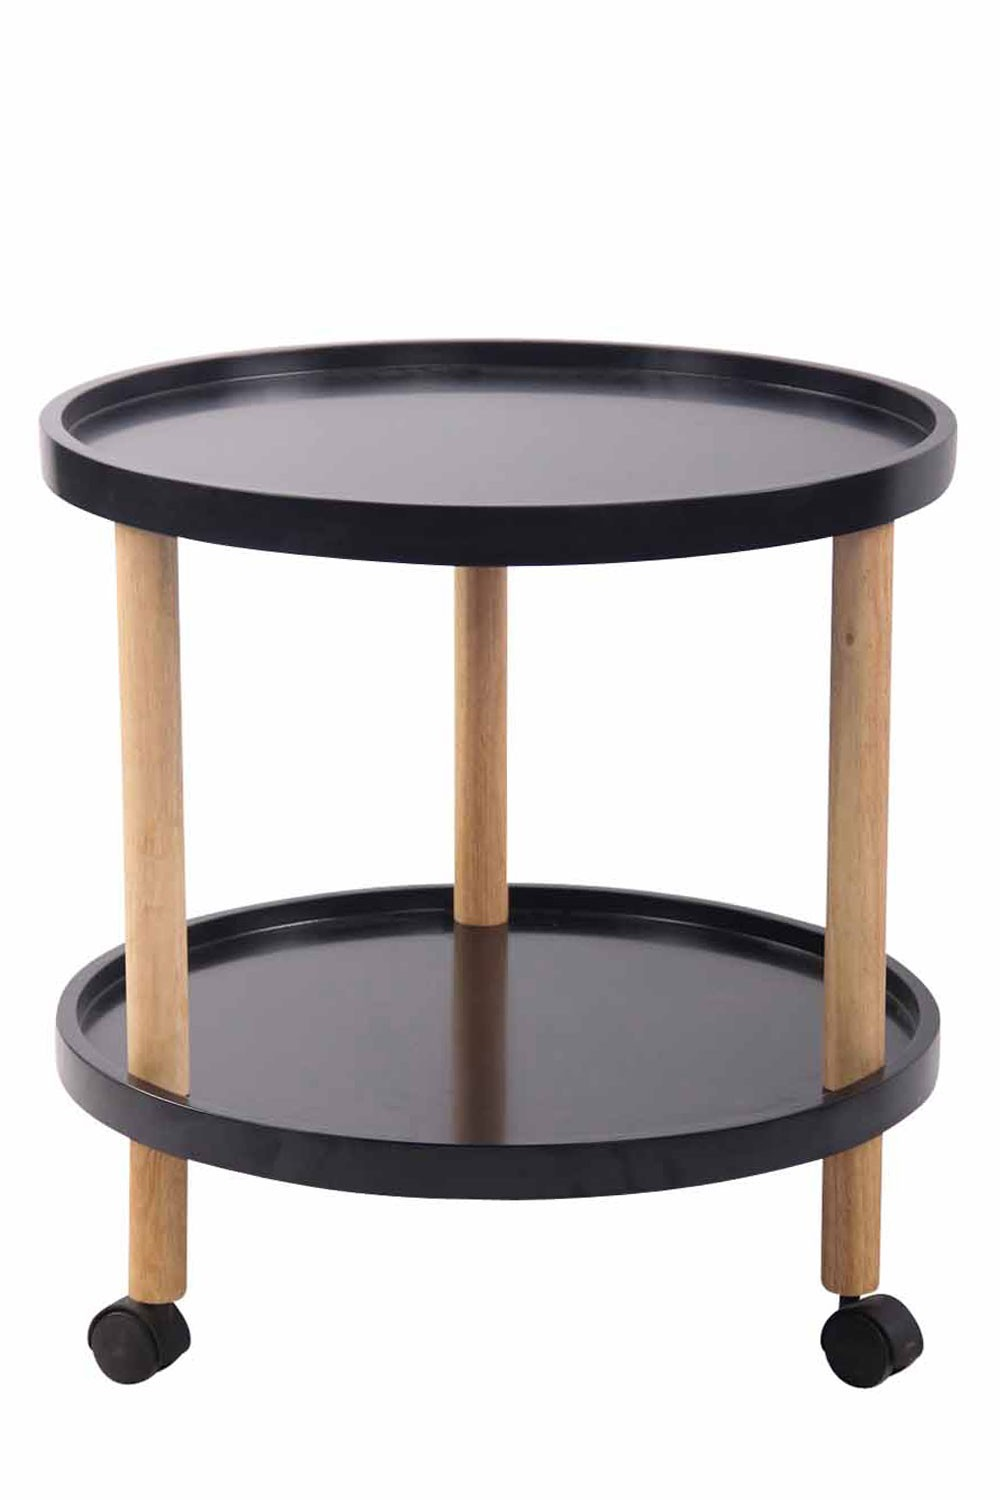 Table d'appoint Odense